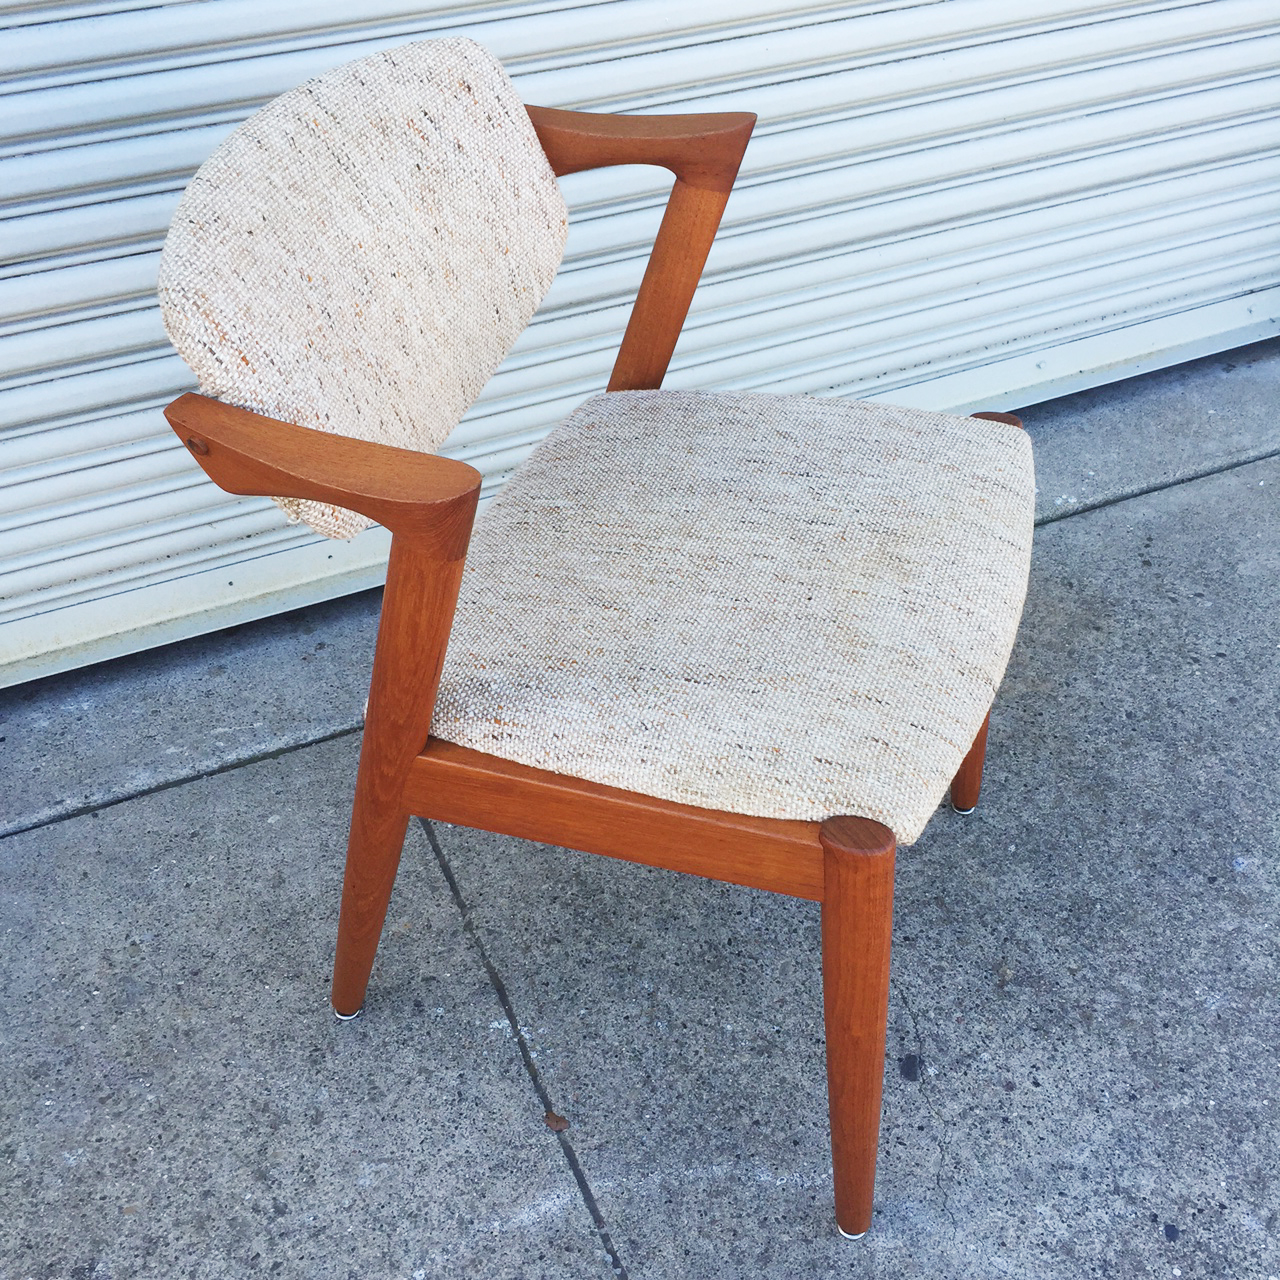 Kai kristensen model 42 z chair sold midcenturysanjose for Z chair mid century